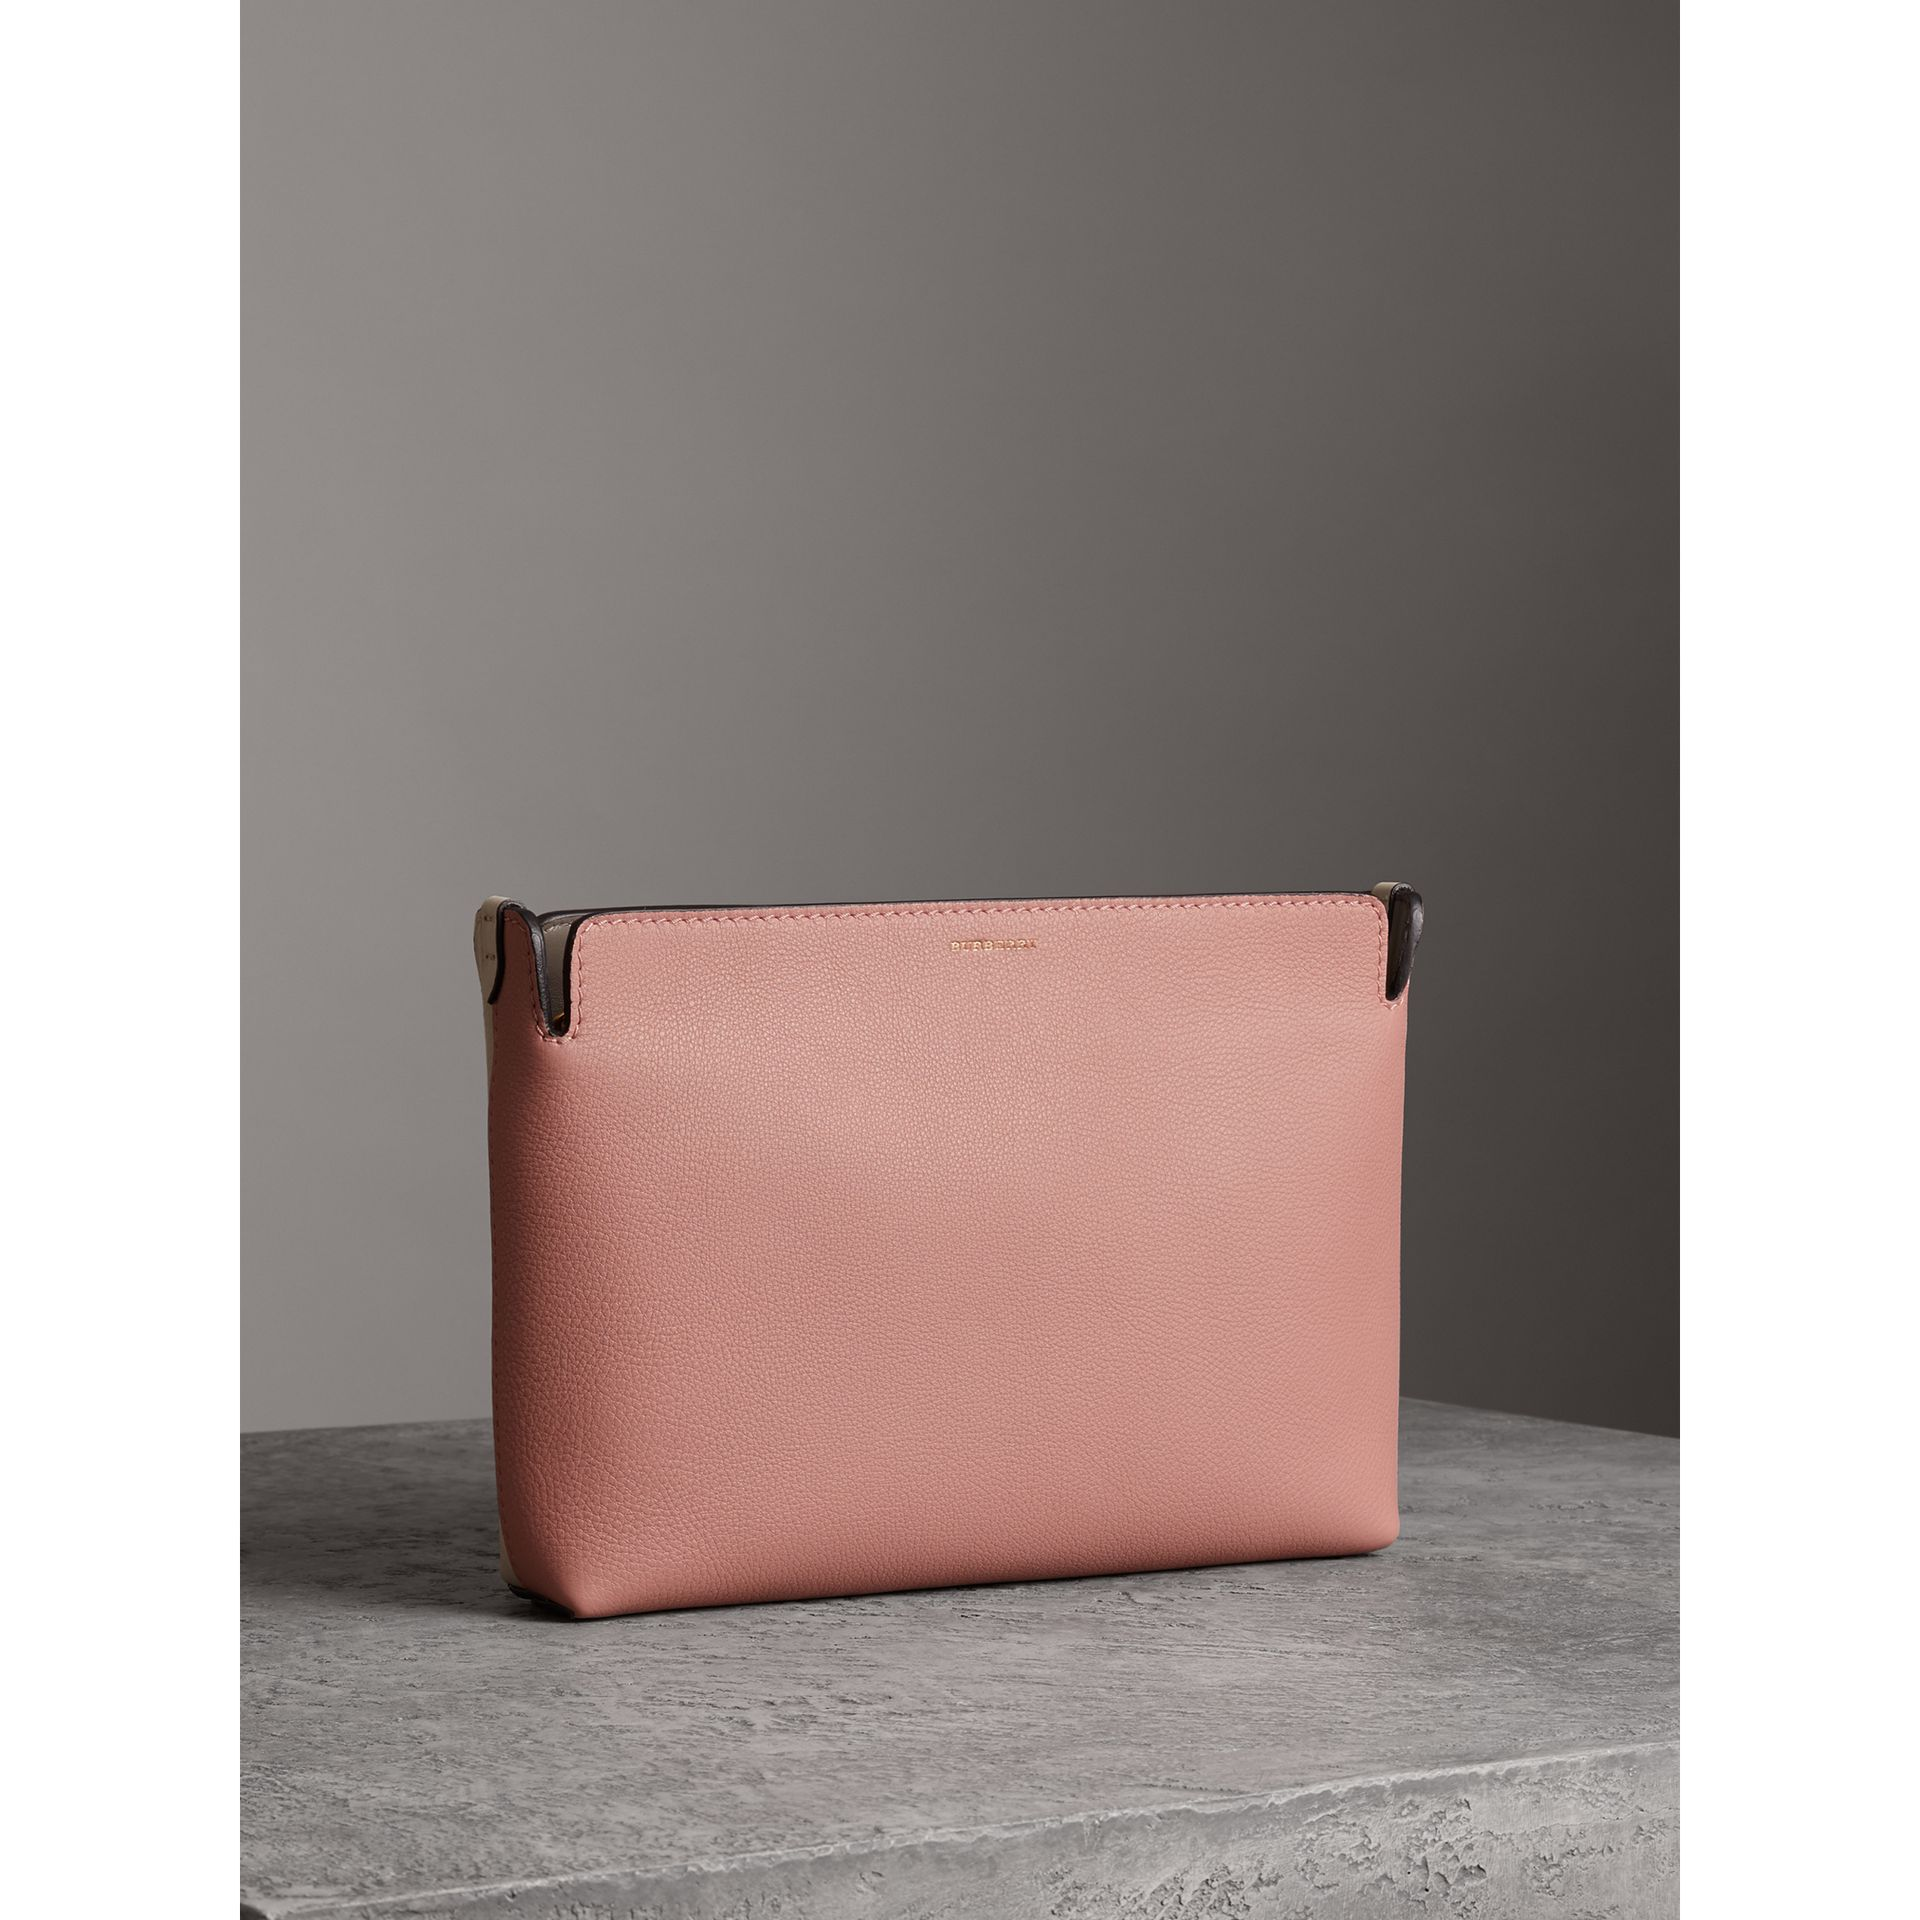 Medium Tri-tone Leather Clutch in Dusty Rose/limestone - Women | Burberry - gallery image 6